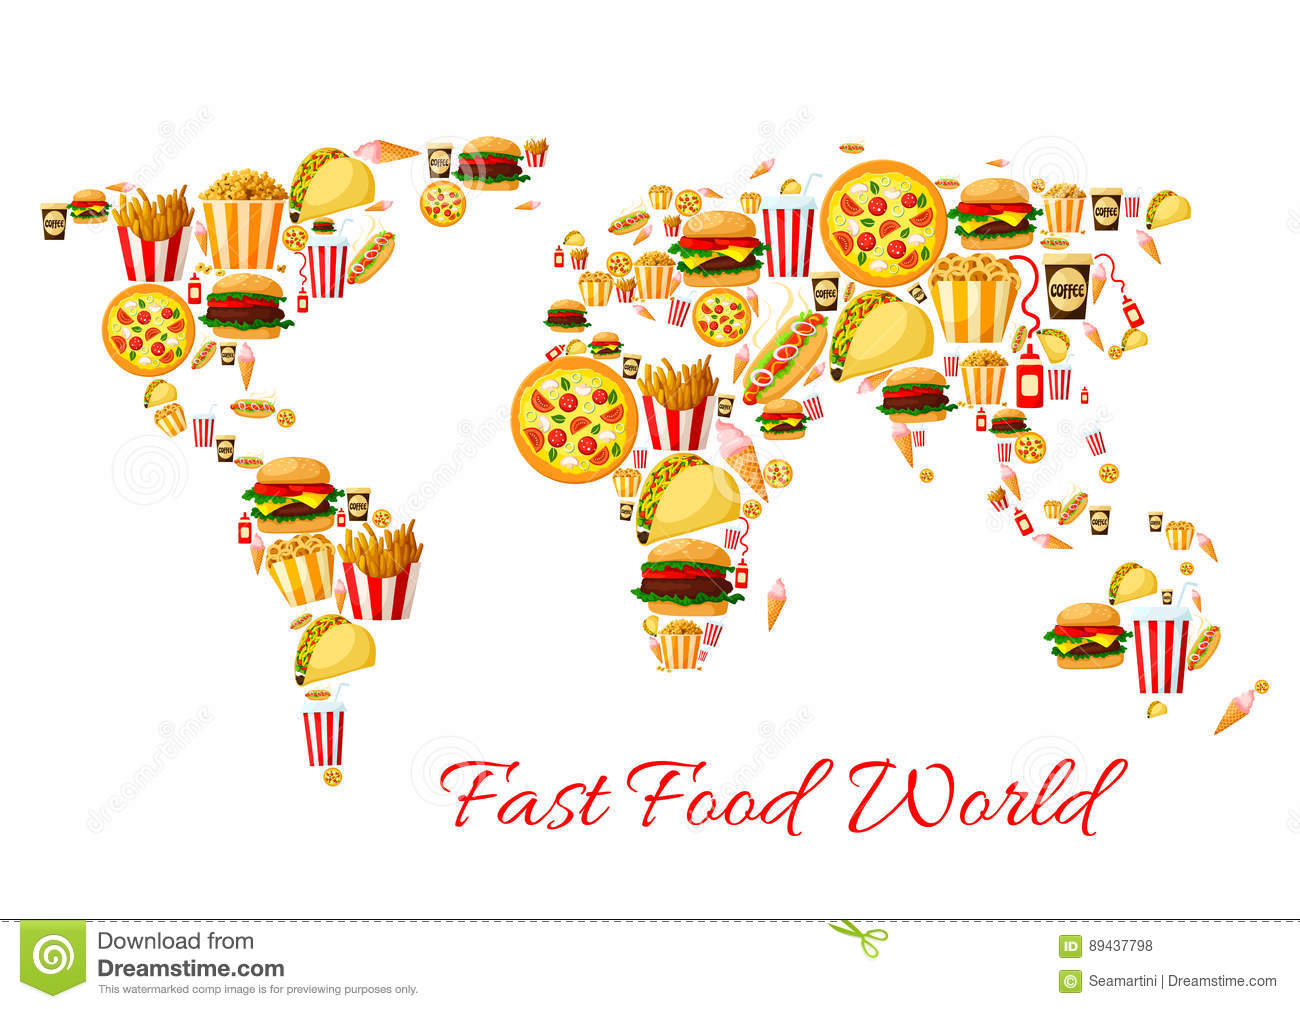 Wide Fast Food World Map on fast food people, mcdonald's world map, fast food india, fast food russia, fast food books, fast food united kingdom, fast food places, fast food asia, timeline world map, fast food games, jewelry world map, game thrones world map, fast food usa, fast food characters, long island world map, fast food sweden, fast food czech republic, fast food animals, pasta world map, fast food canada,